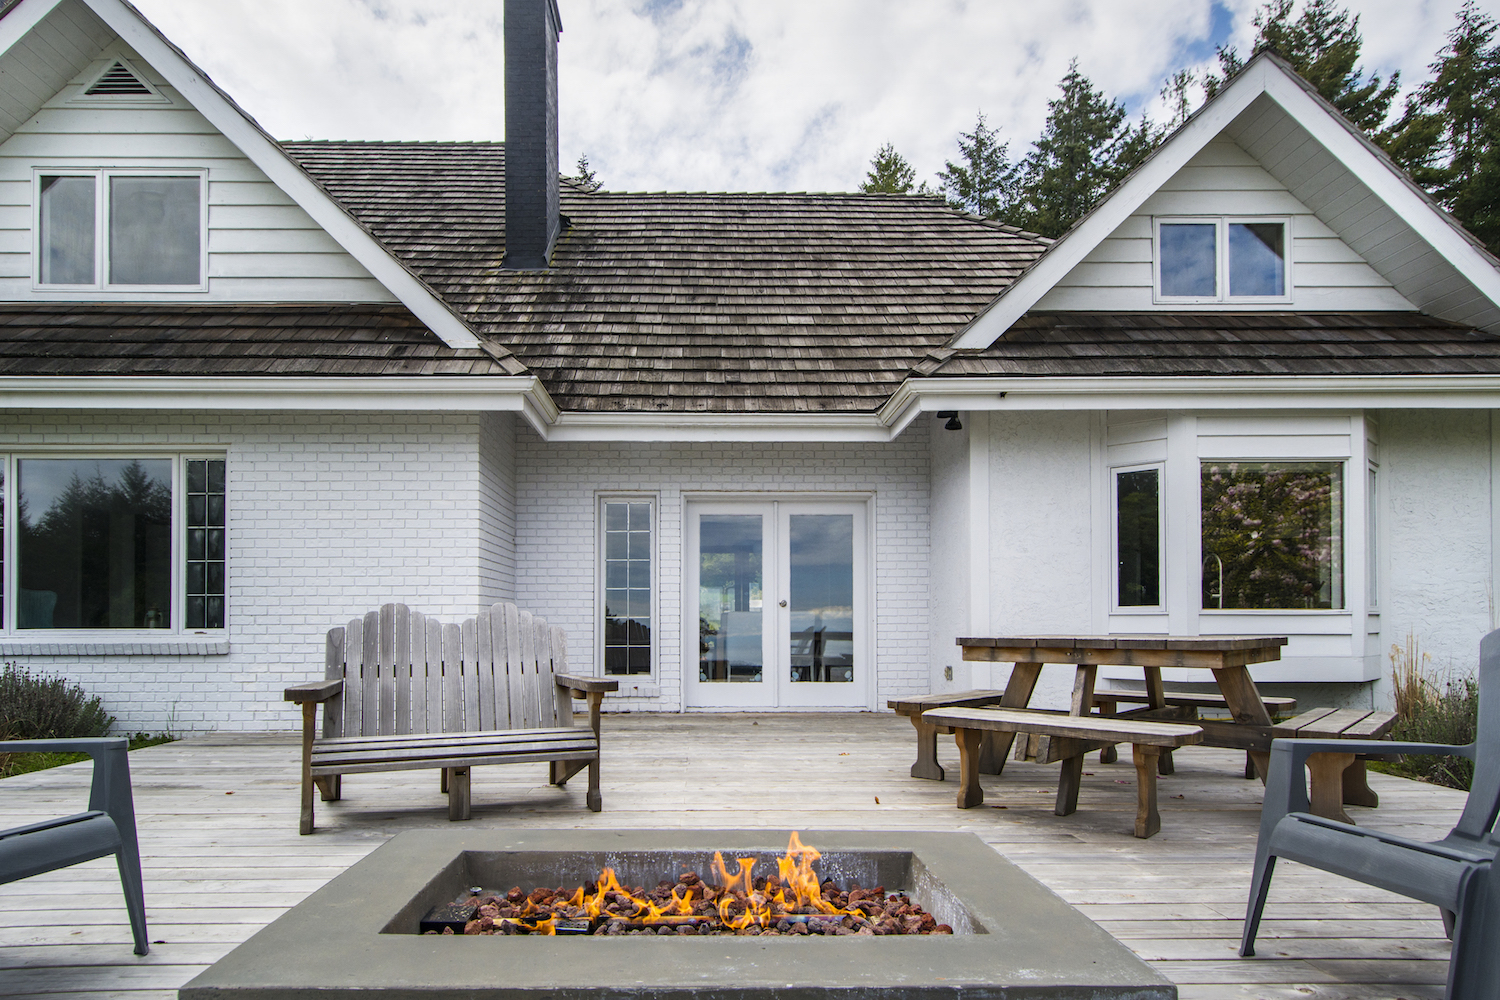 Firepit and House.jpeg